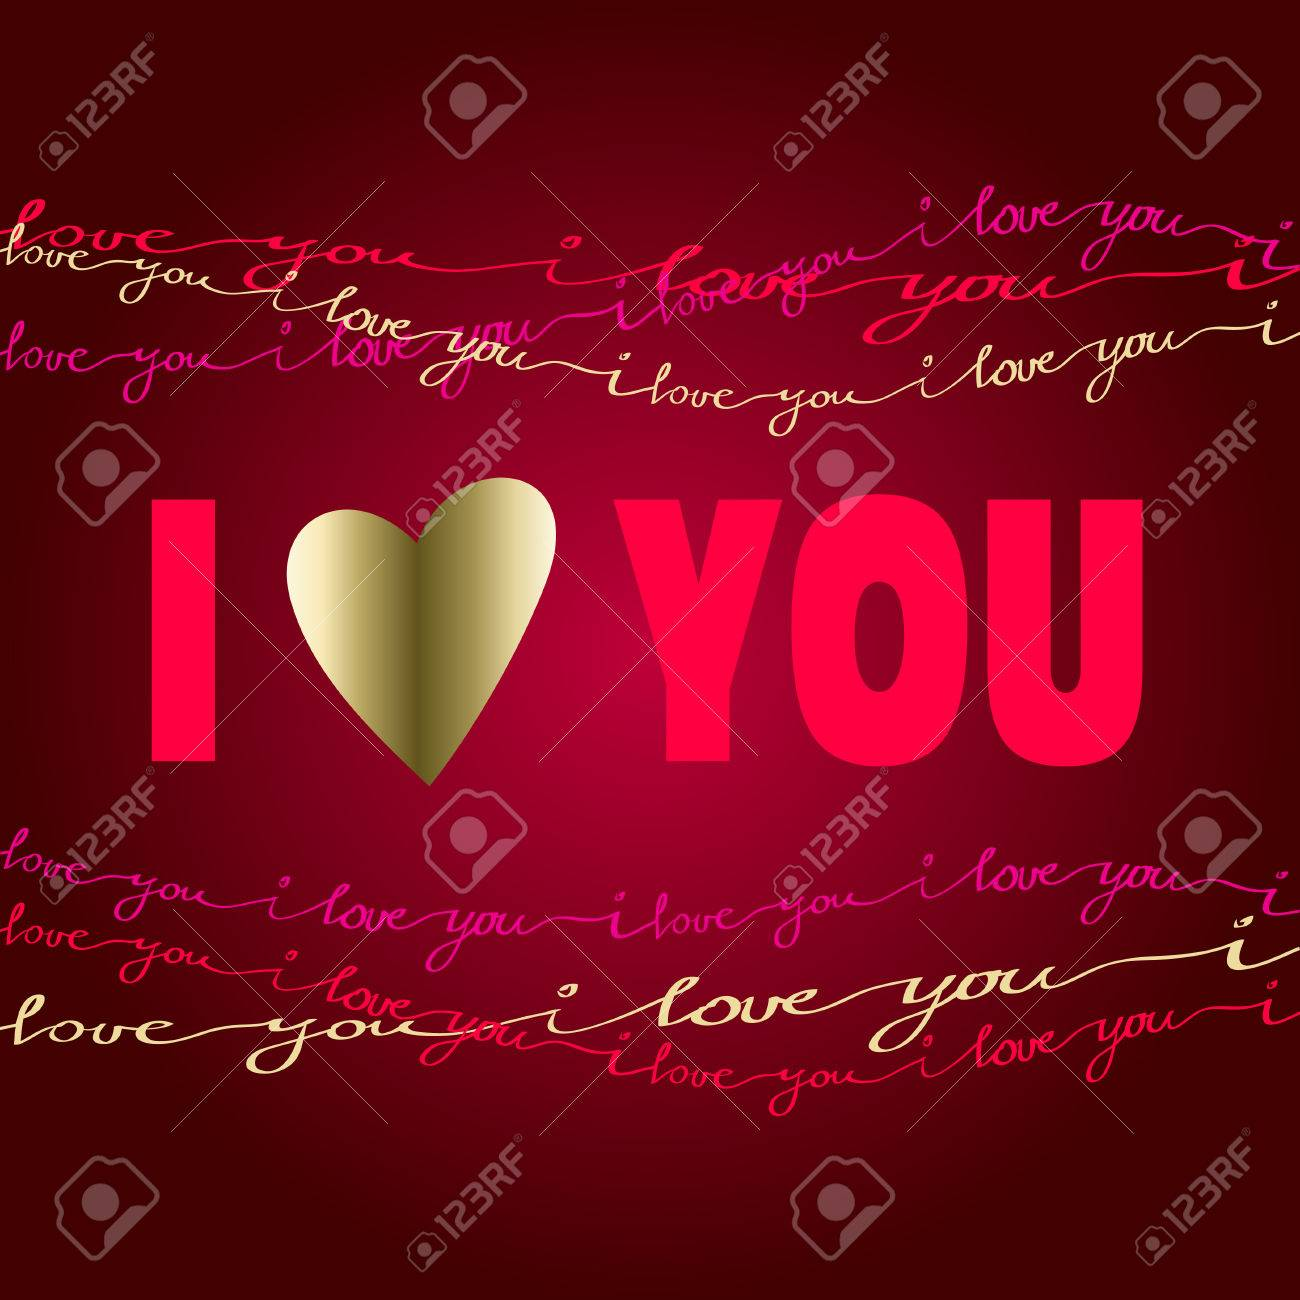 Valentine love card i love you greeting poster pink red gold valentine love card i love you greeting poster pink red gold handwritten m4hsunfo